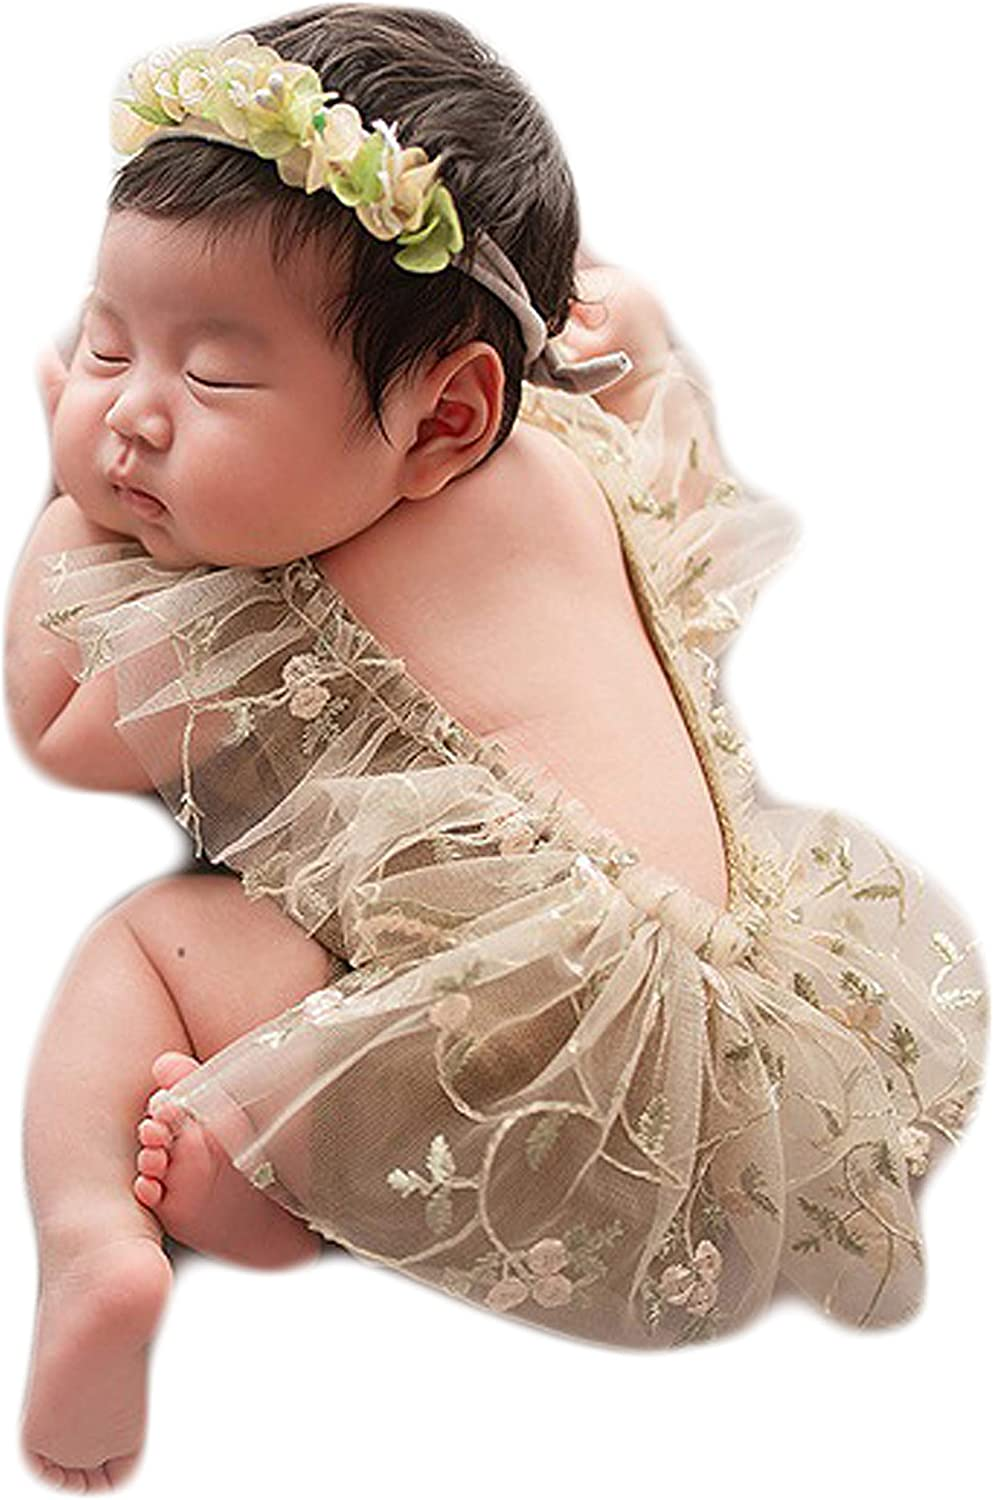 Baby Photography Props Lace Rompers Newborn Photo Shoot Outfits Infant Girl Photos Costume